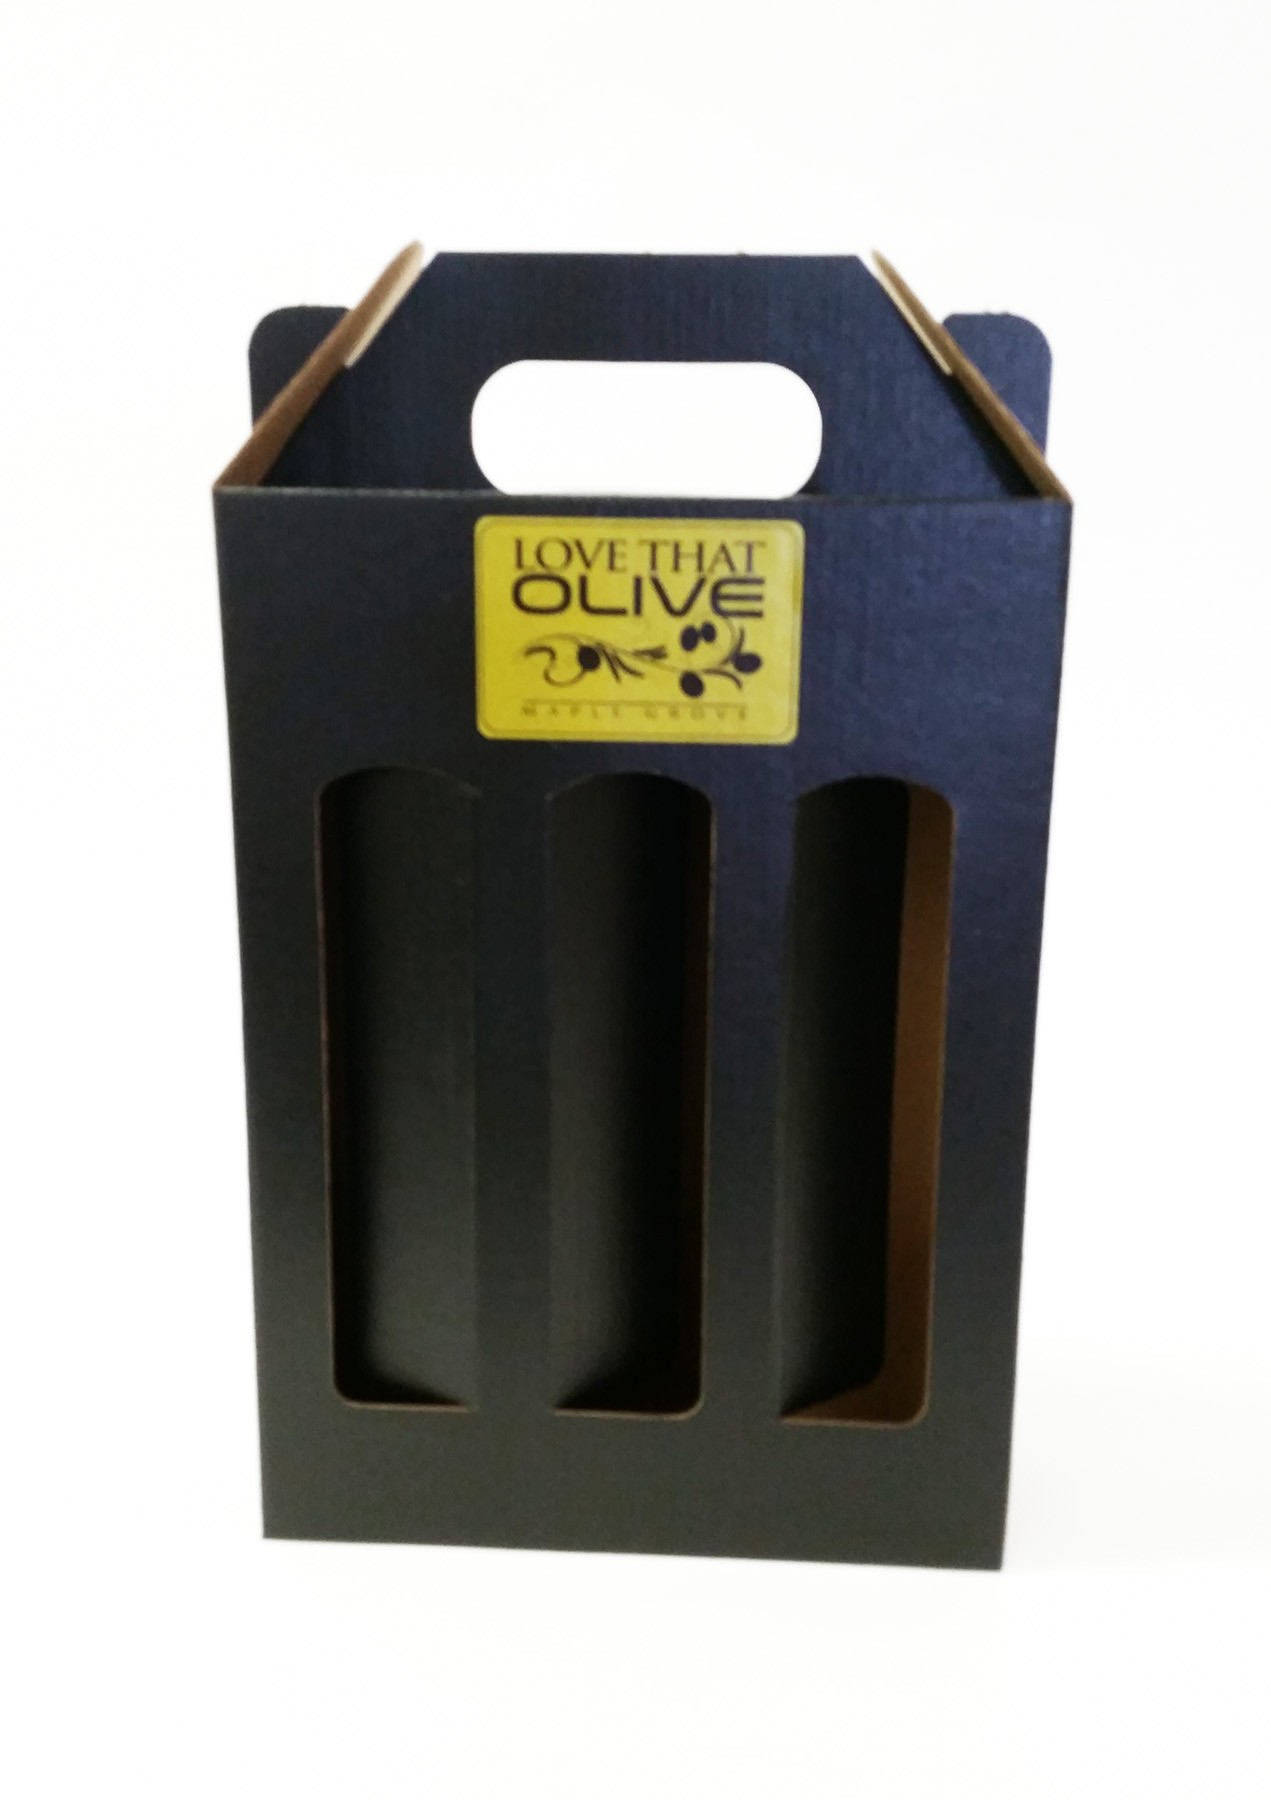 Three-Bottle Gift Box in Black